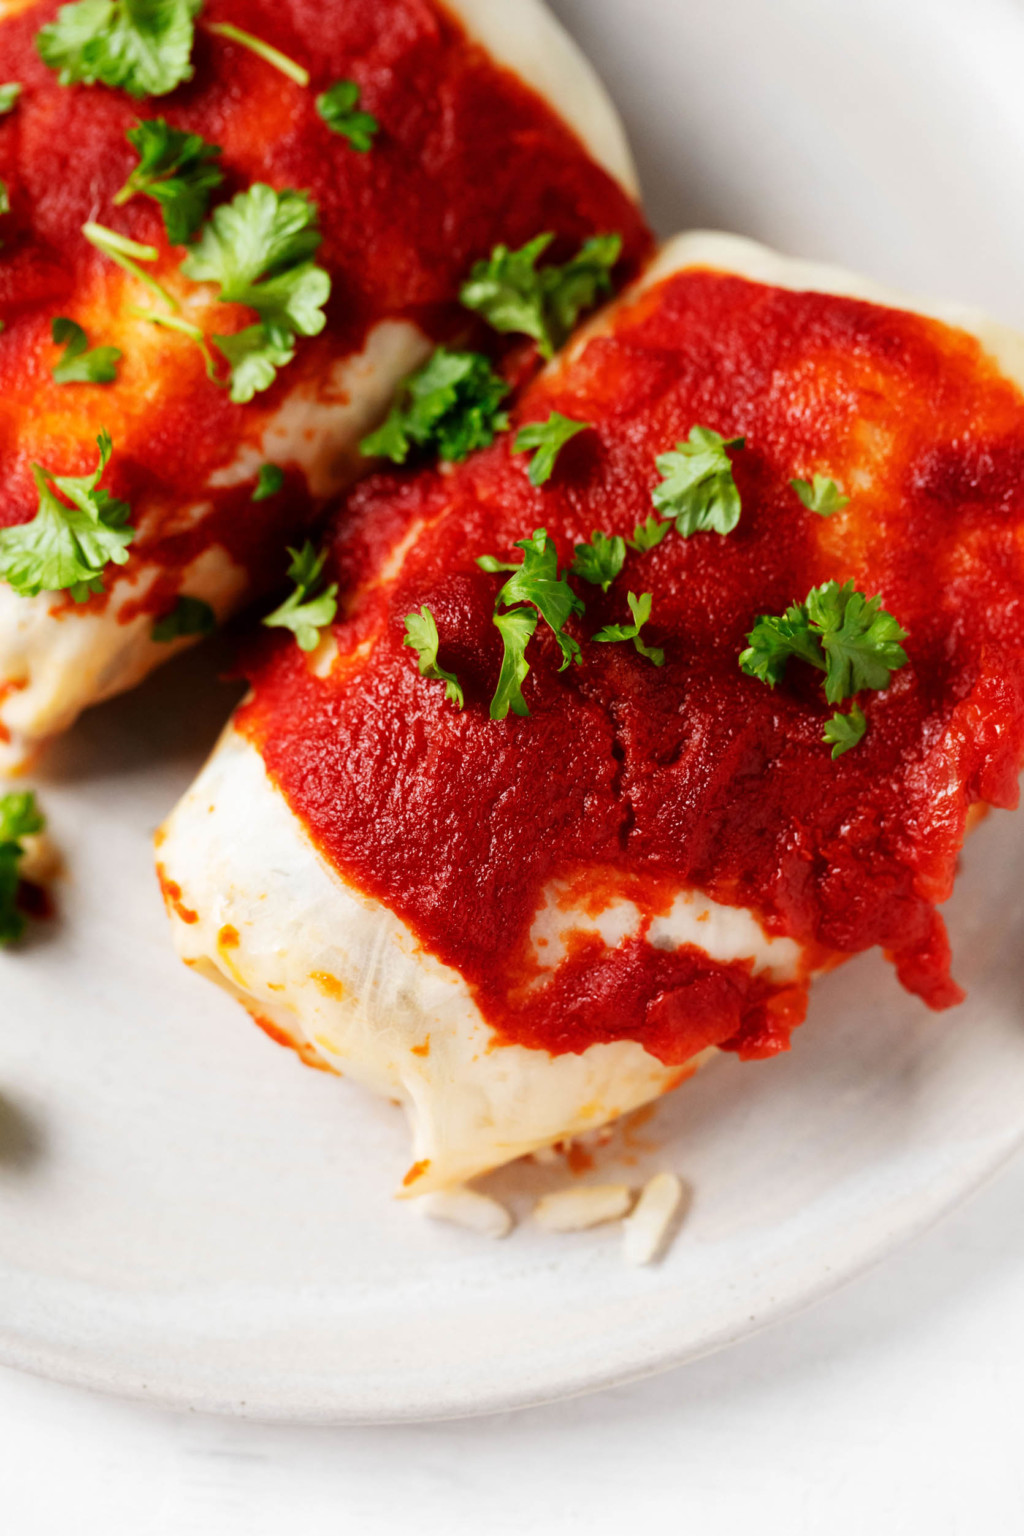 Two stuffed cabbage rolls have been garnished with fresh, chopped parsley and a tomato-based sauce. They're laid out on a white serving plate.